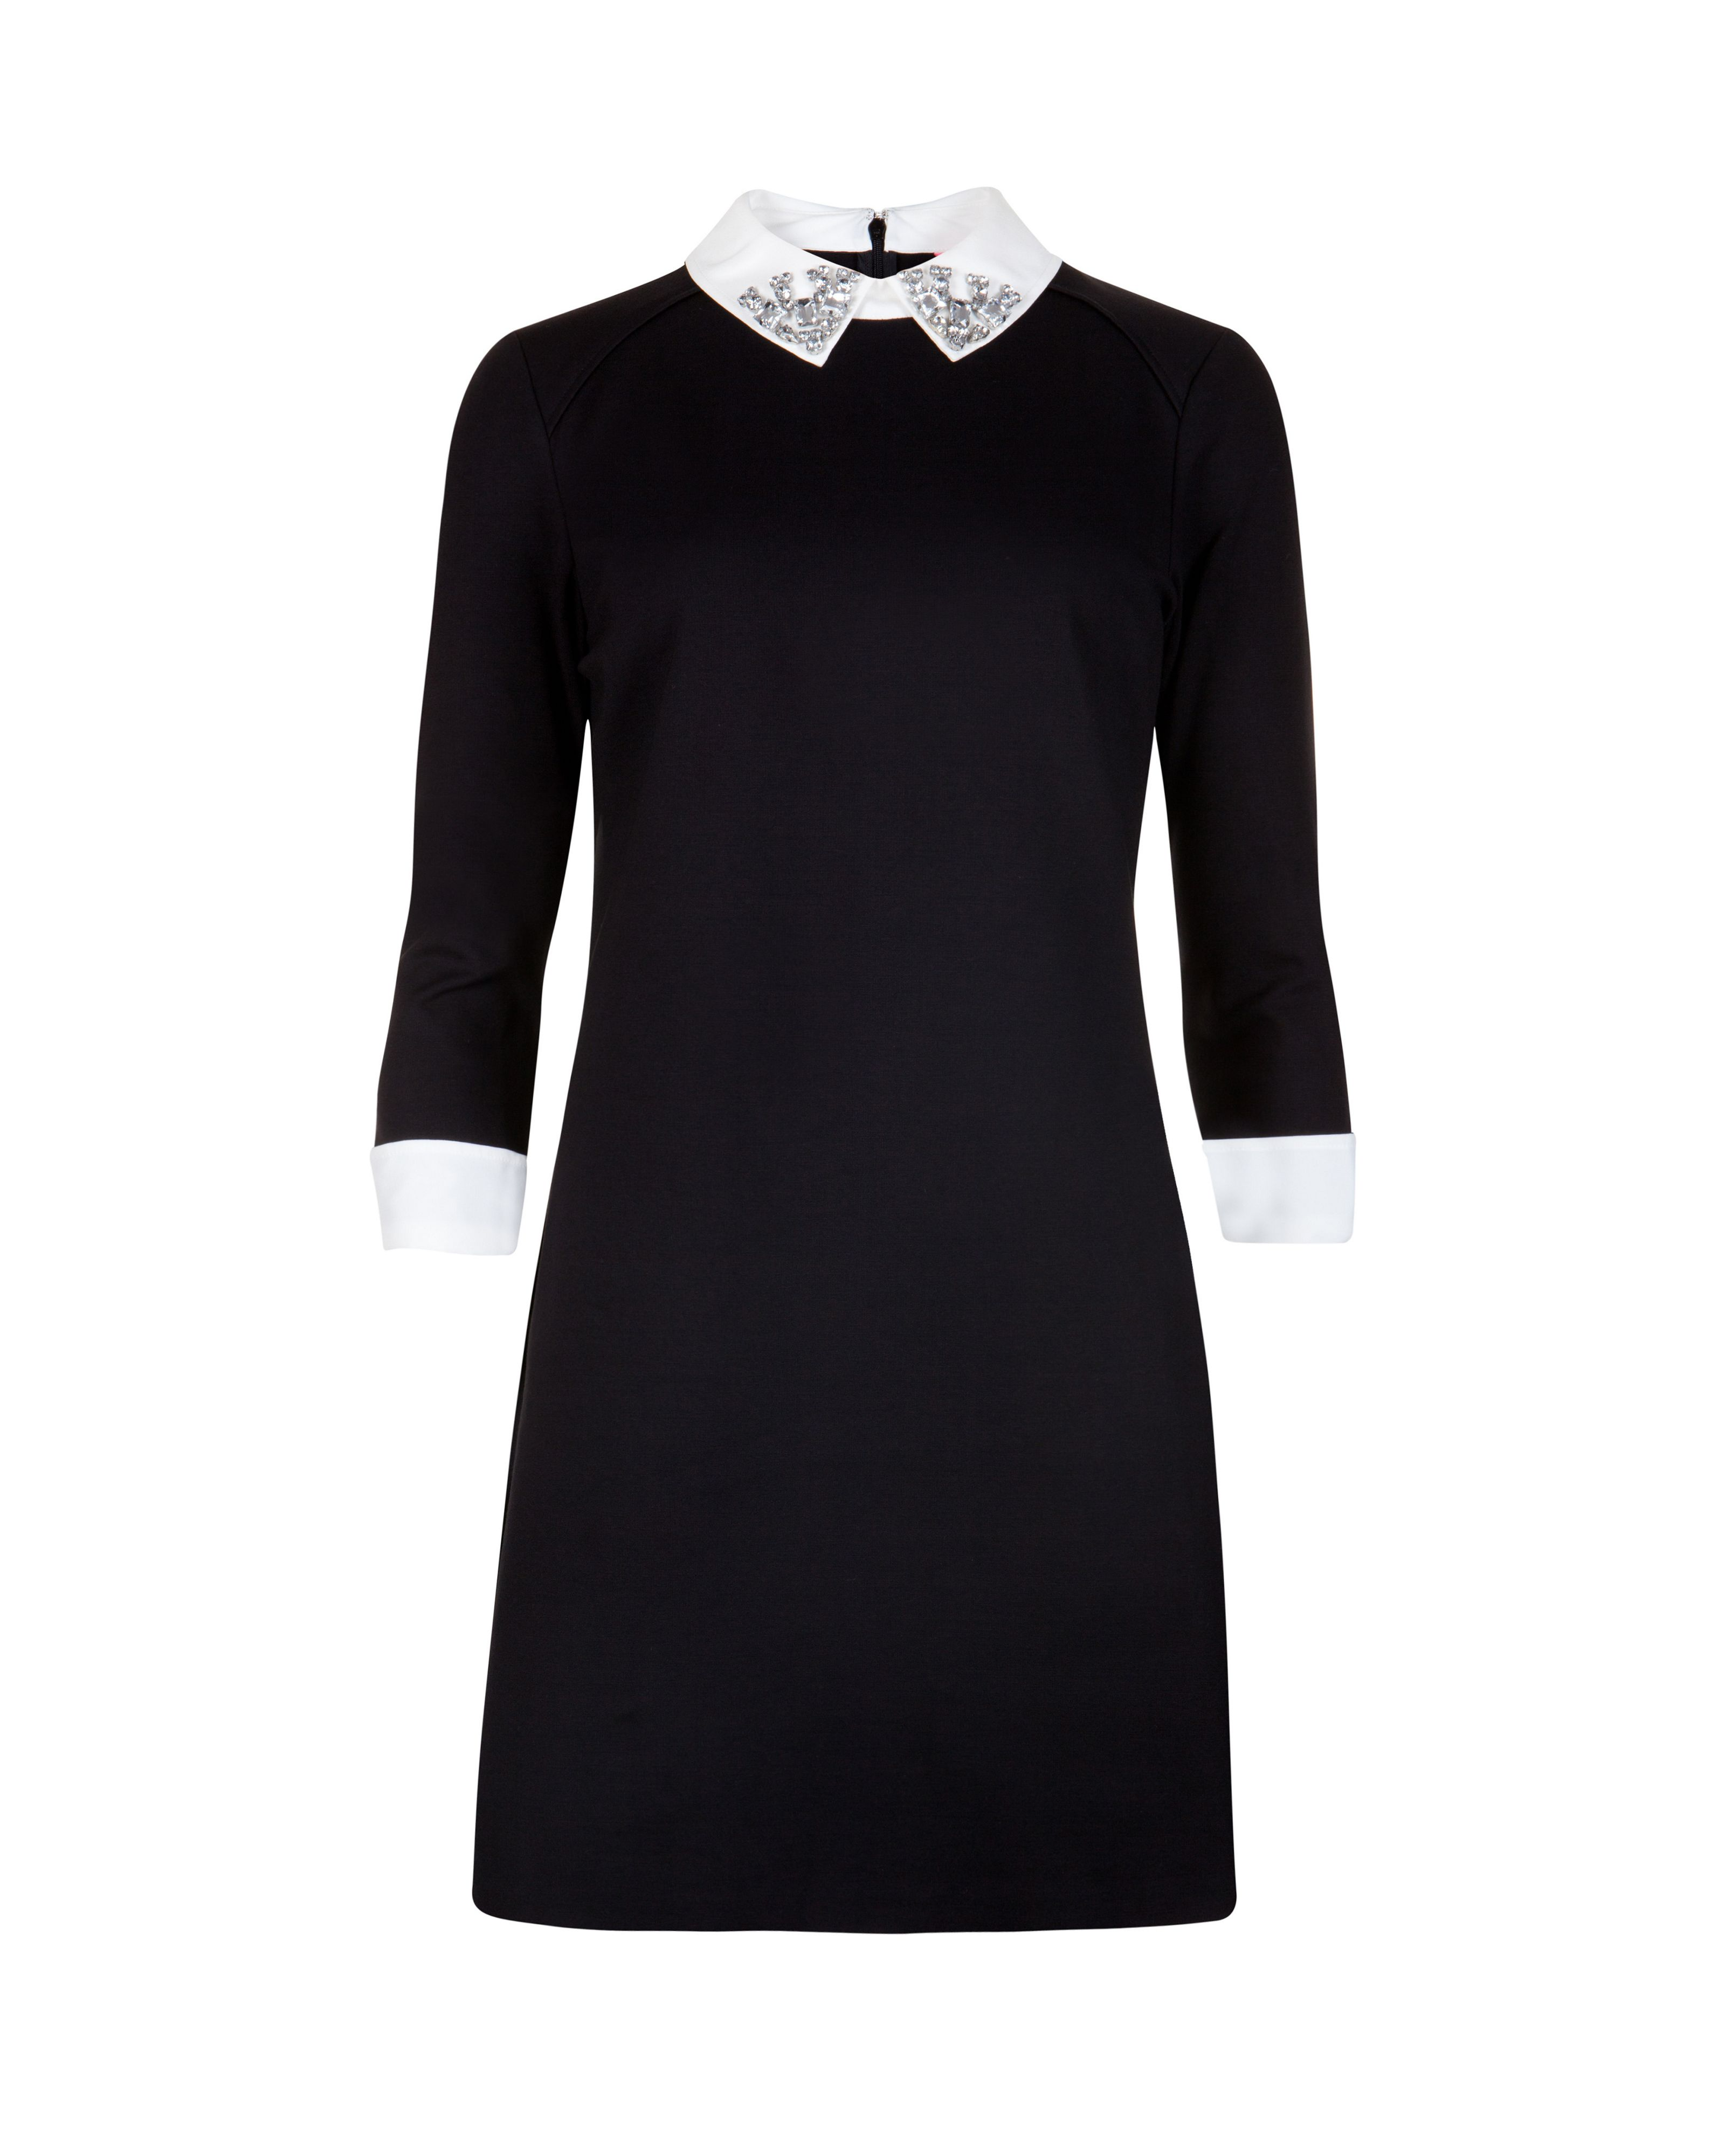 Eelah embellished collar dress